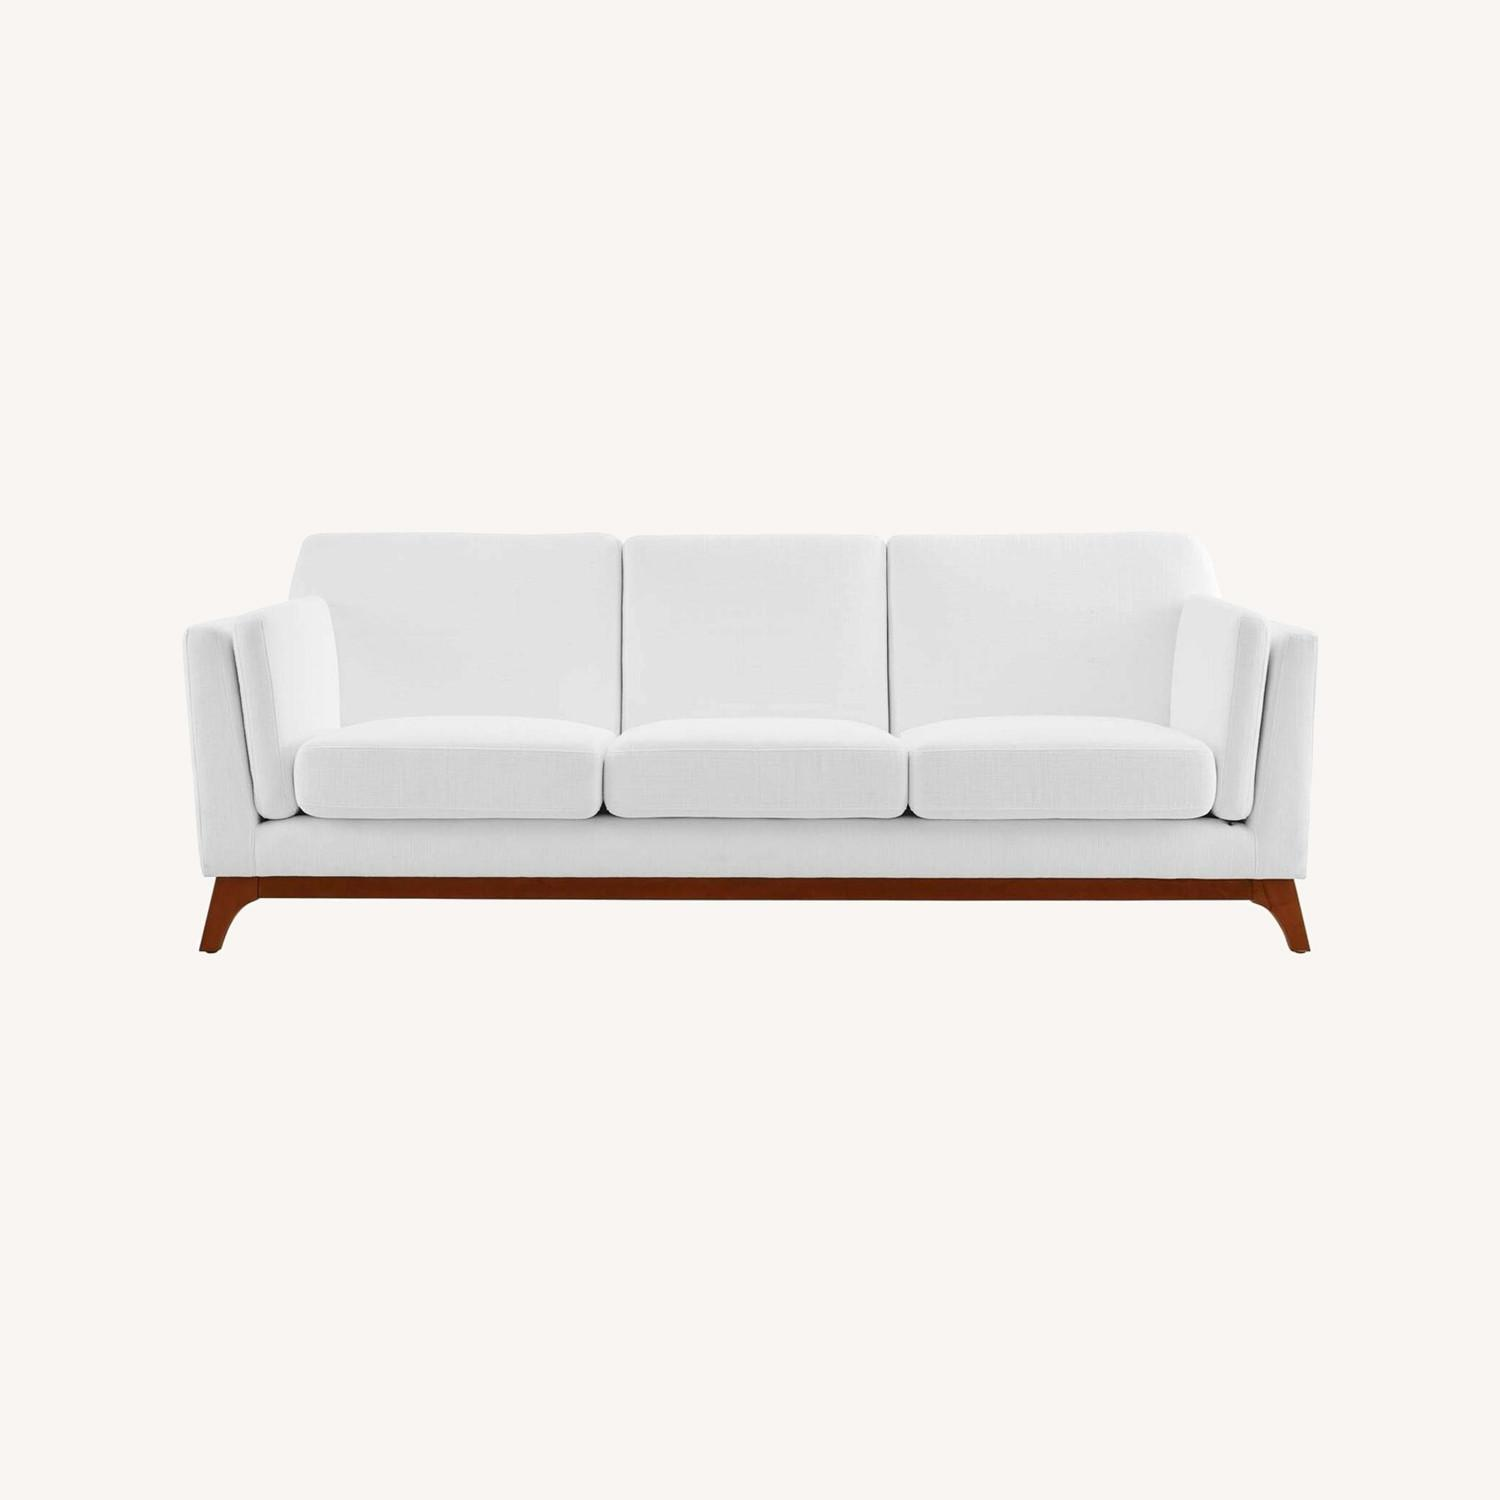 Sofa In White Fabric W/ Solid Wood Frame - image-5